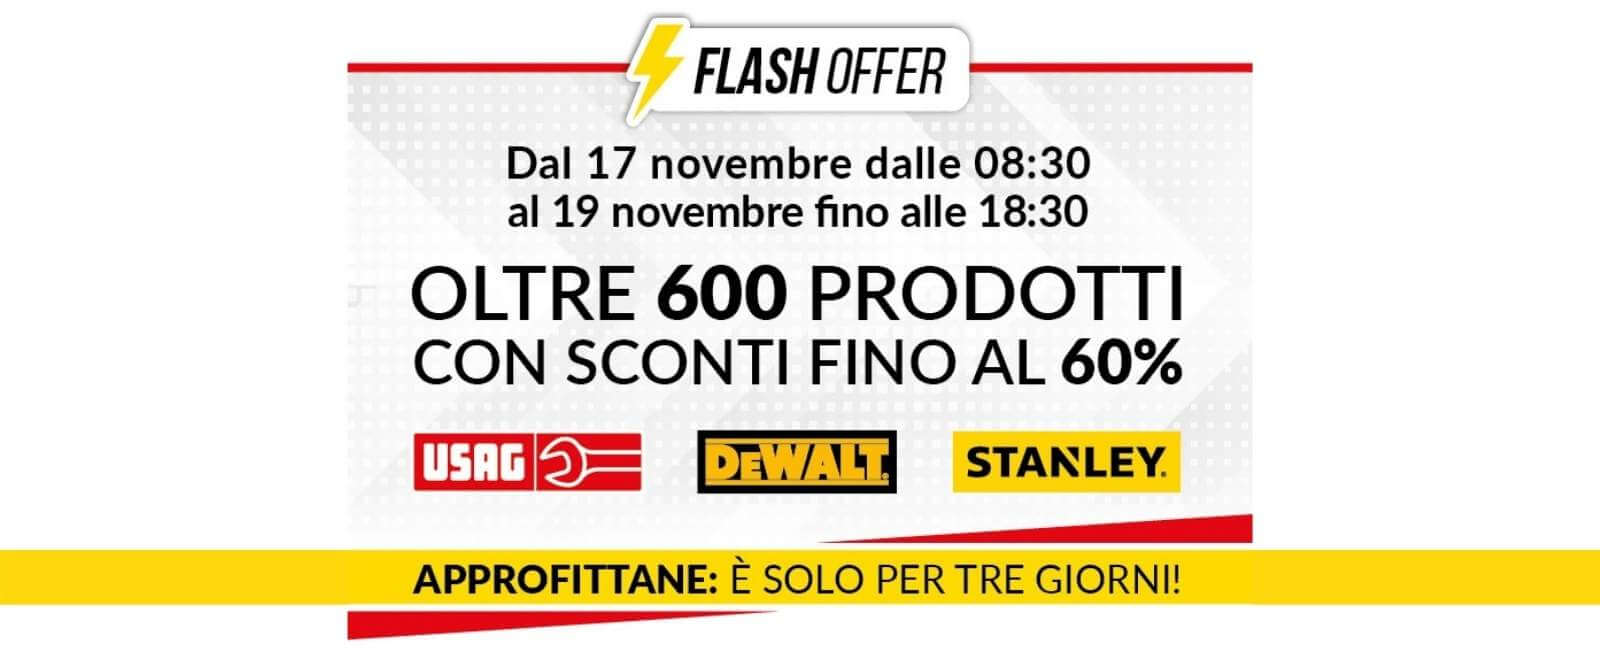 FLASH OFFER - Sconti fino al 60%